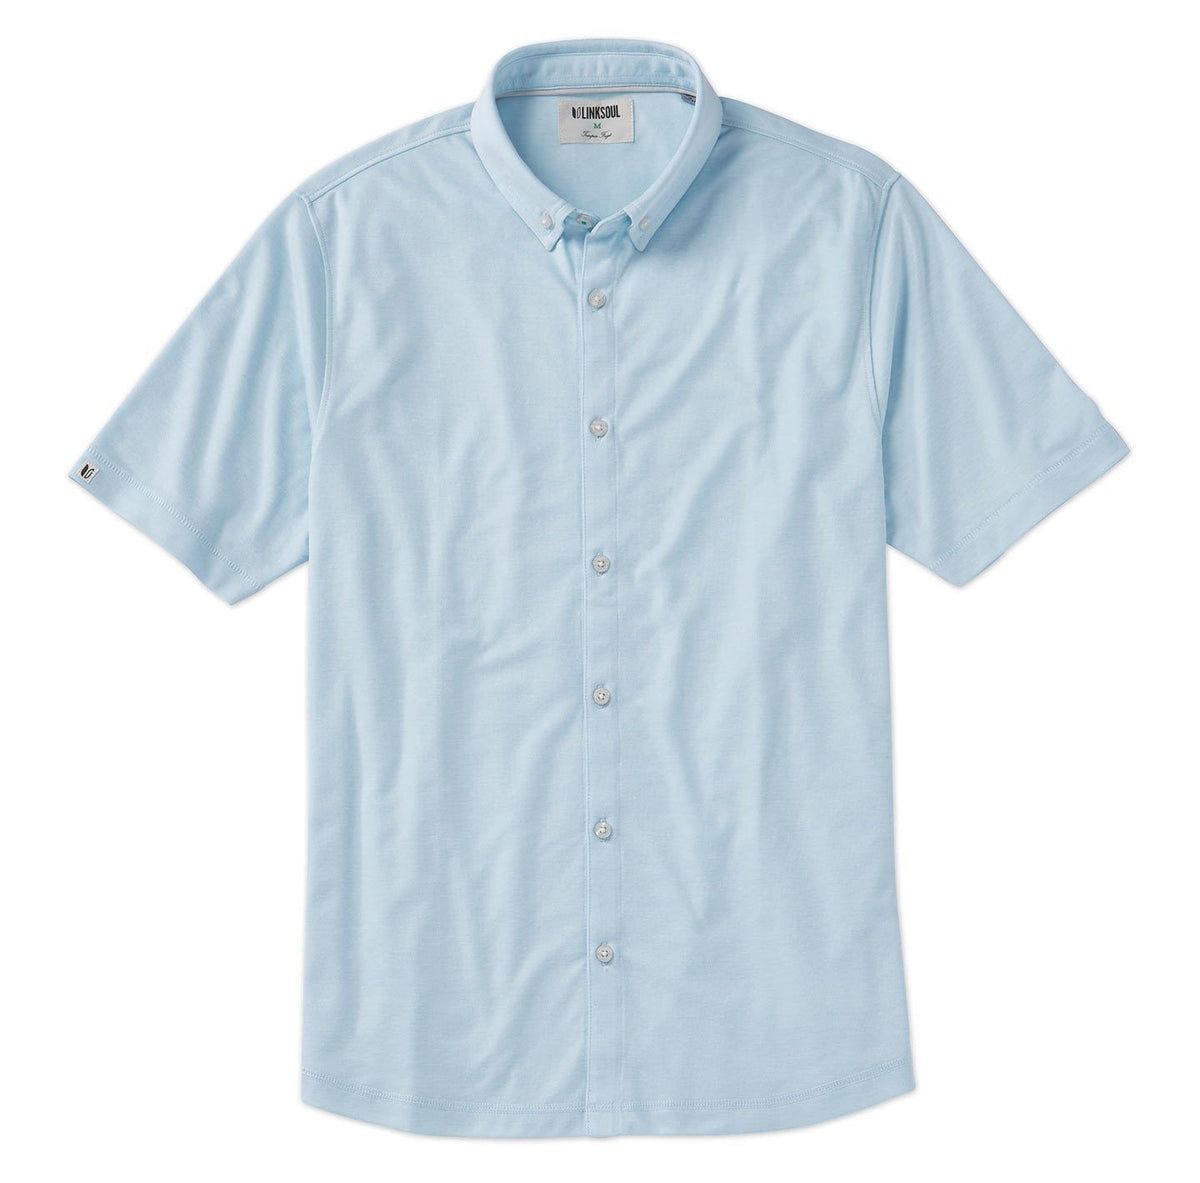 Hybrid Oxford Short-Sleeve Shirt